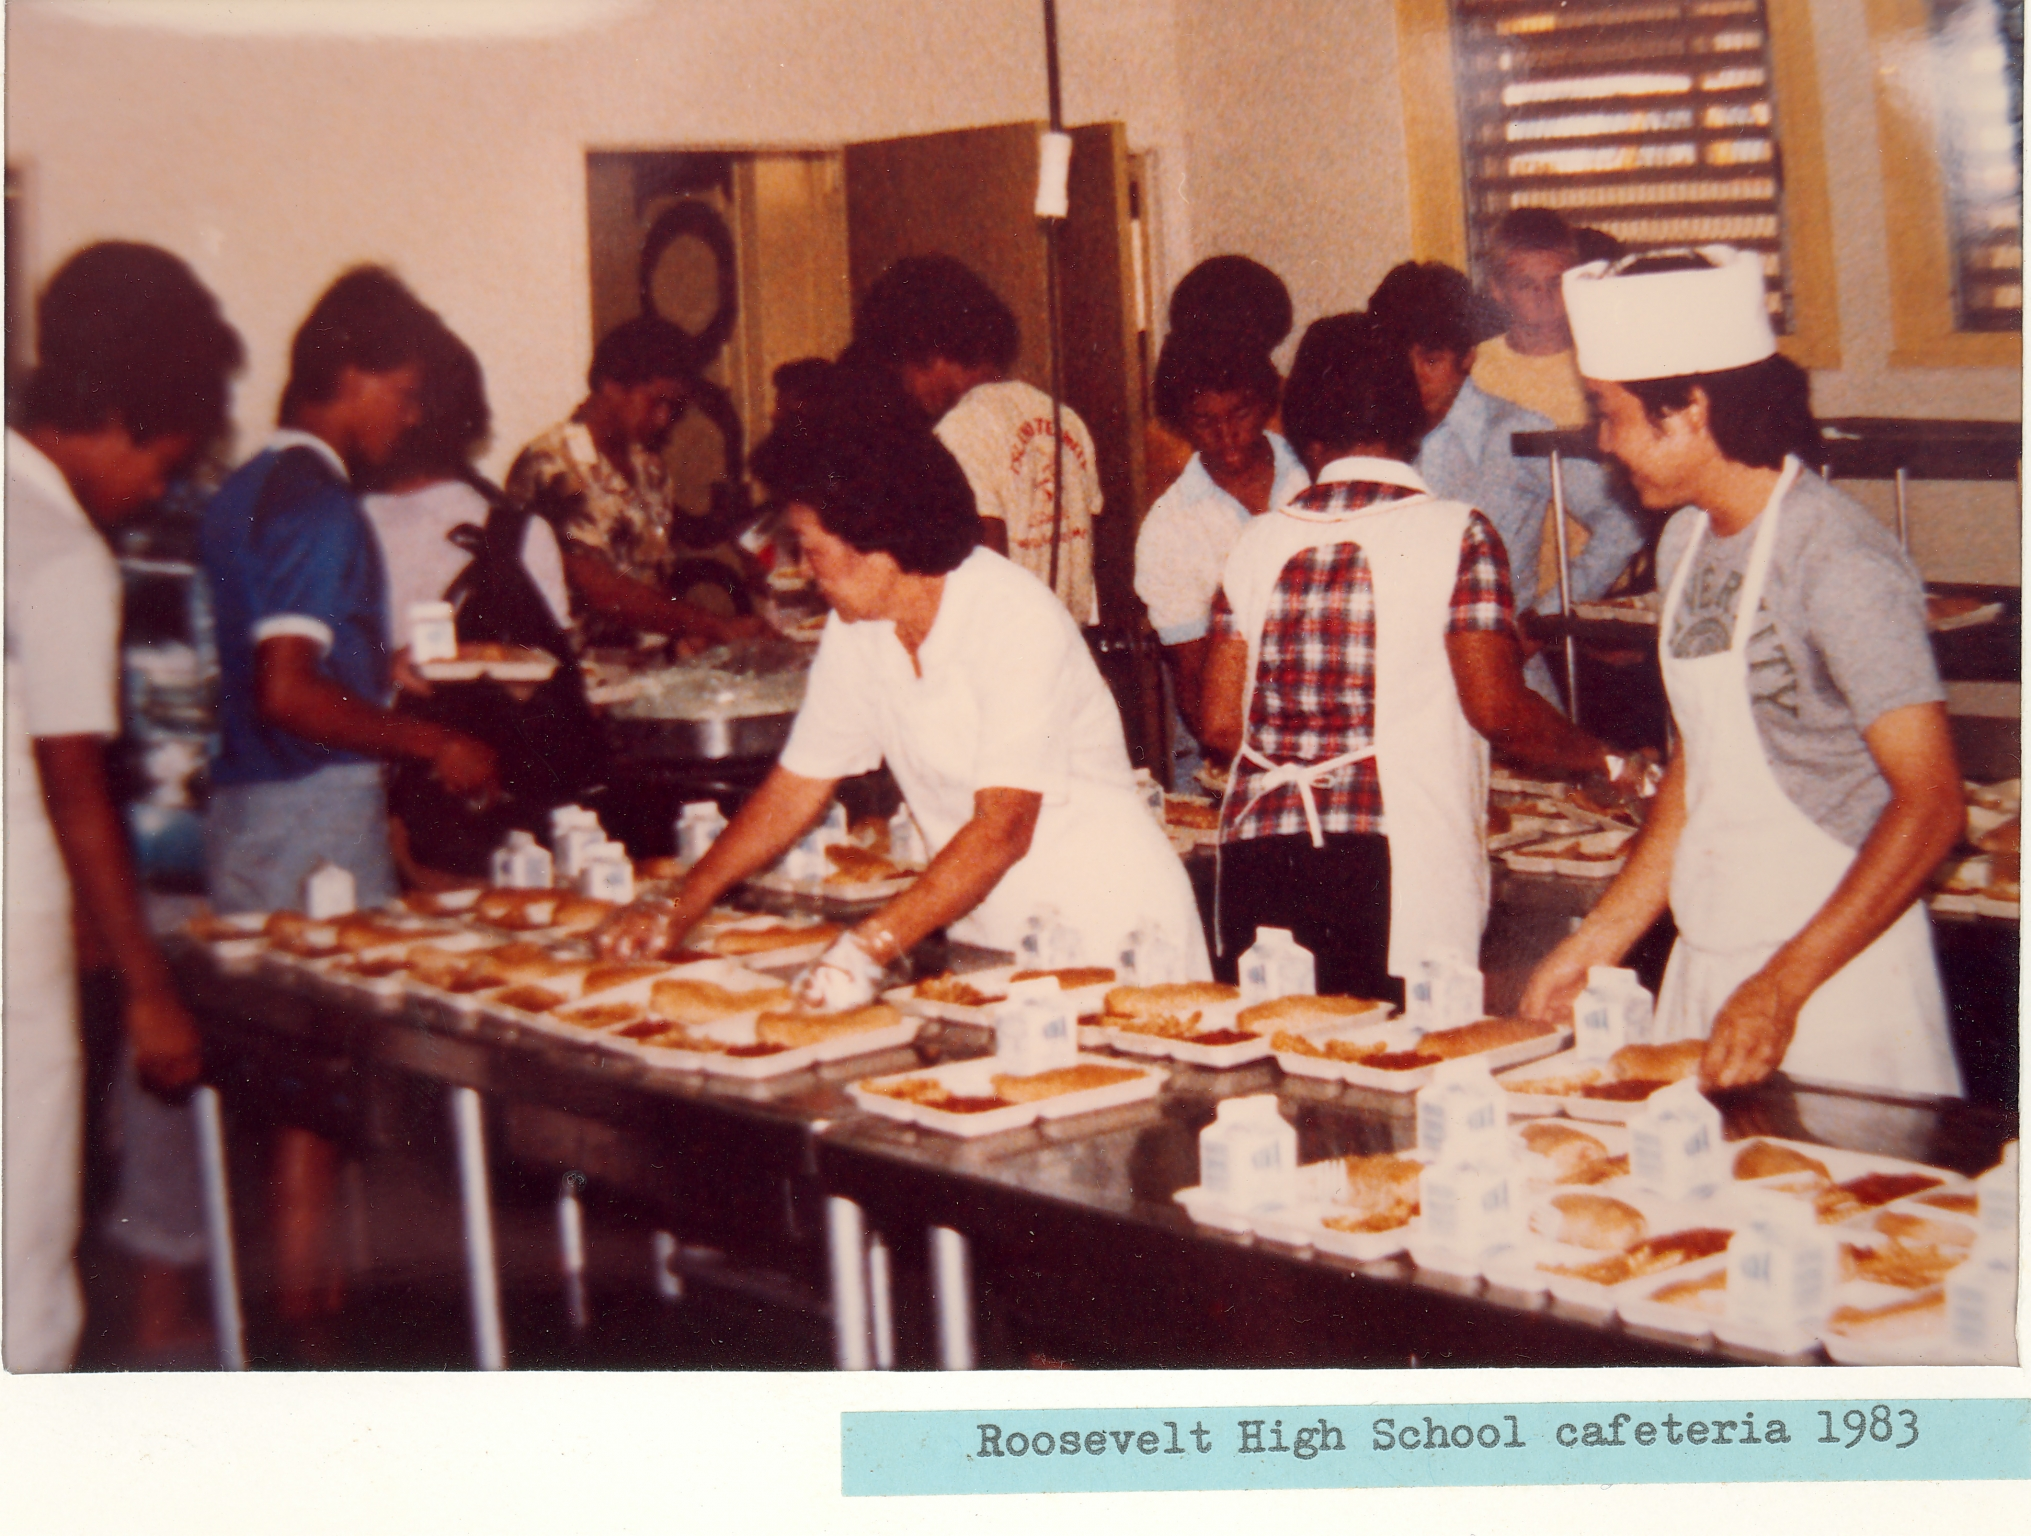 Roosevelt High School 1983 02